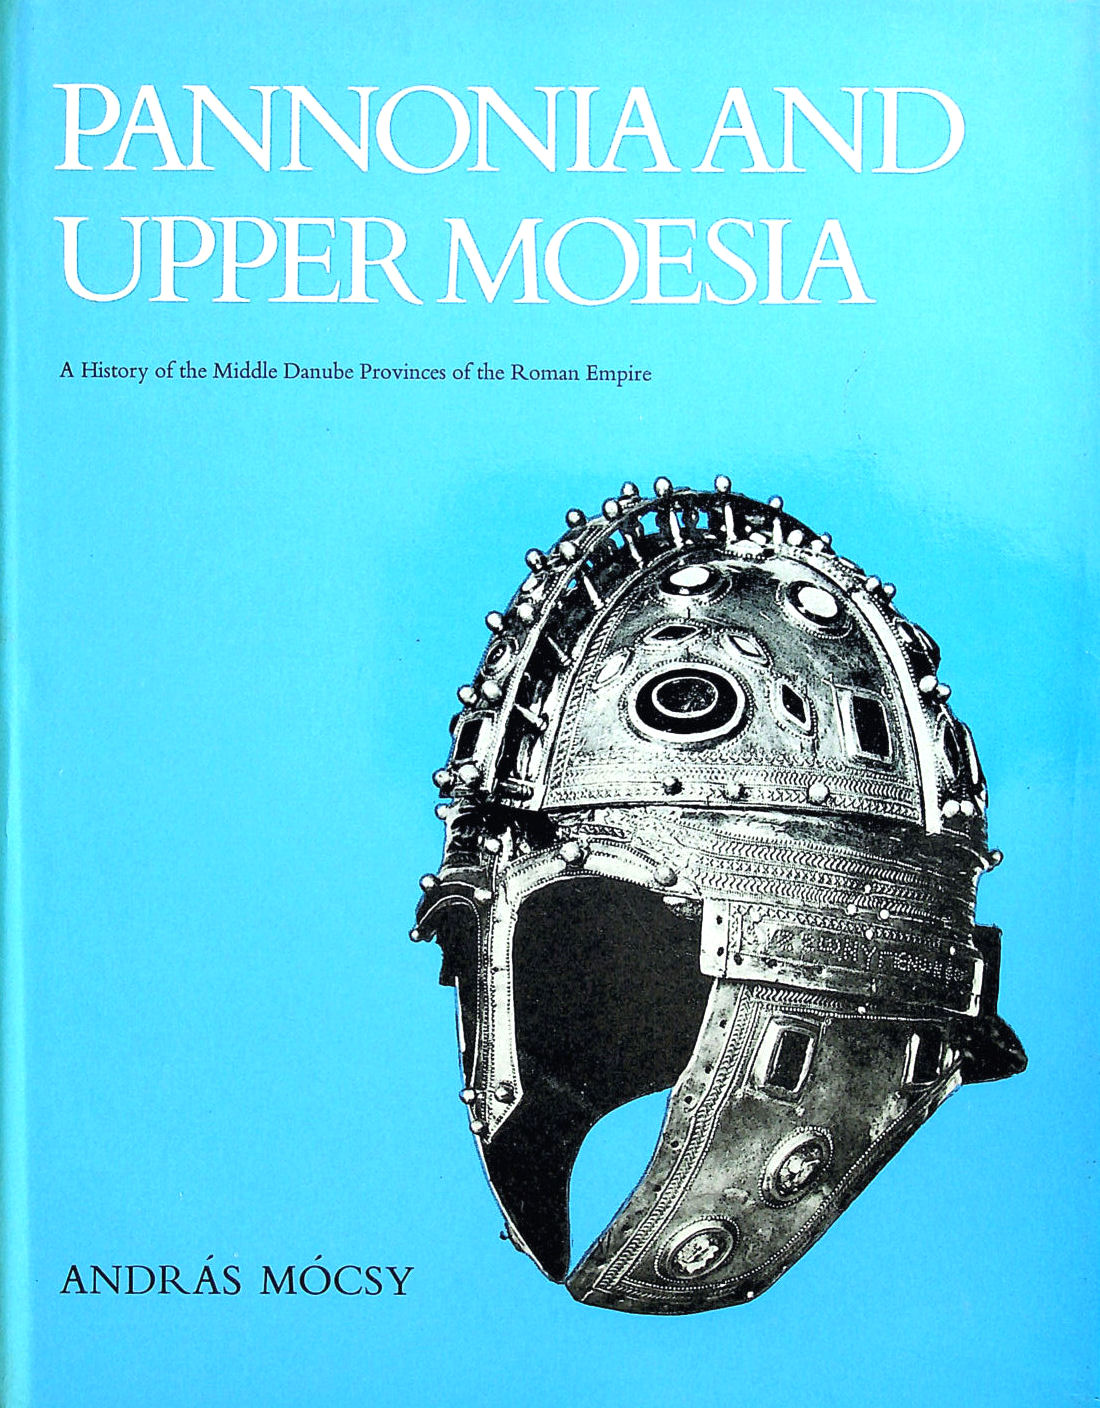 Image for Pannonia and Upper Moesia: A History of the Middle Danube Provinces of the Roman Empire